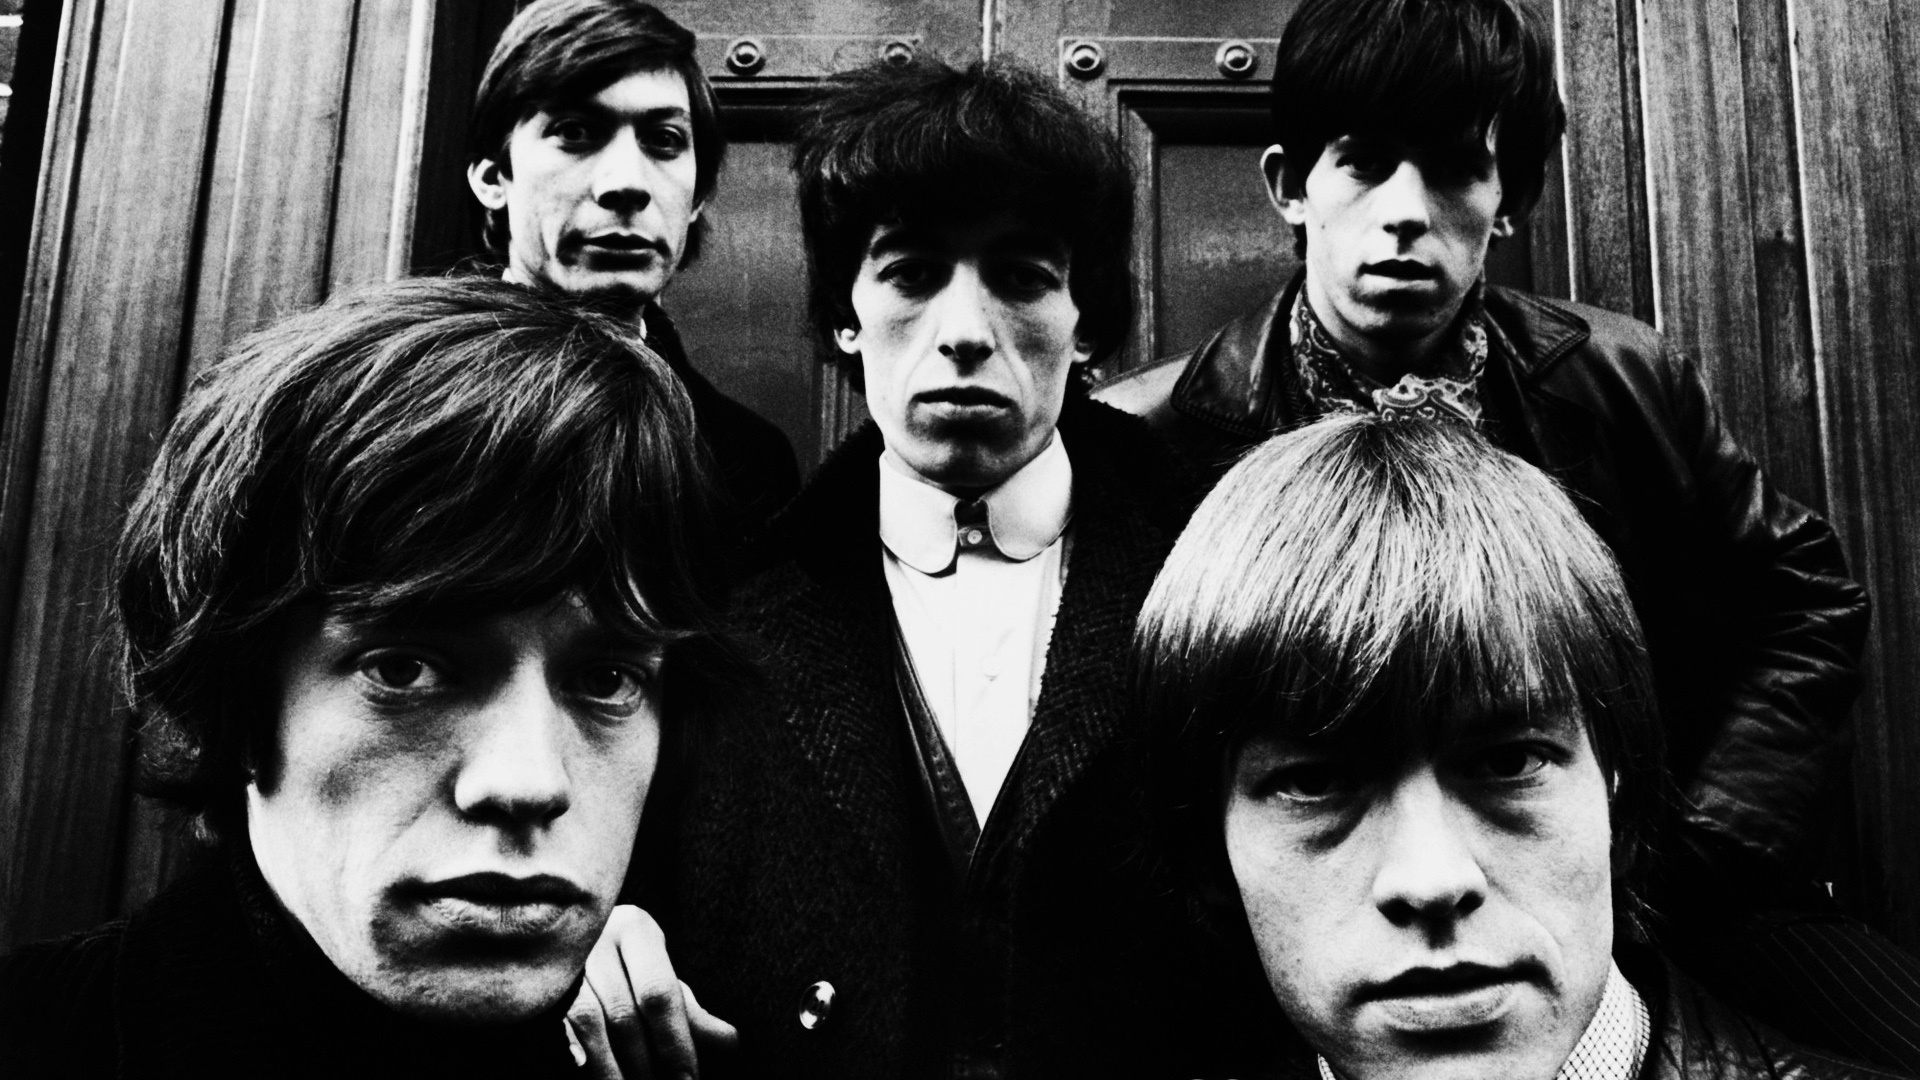 the_rolling_stones_band_members_youth_look_hd-wallpaper-2490